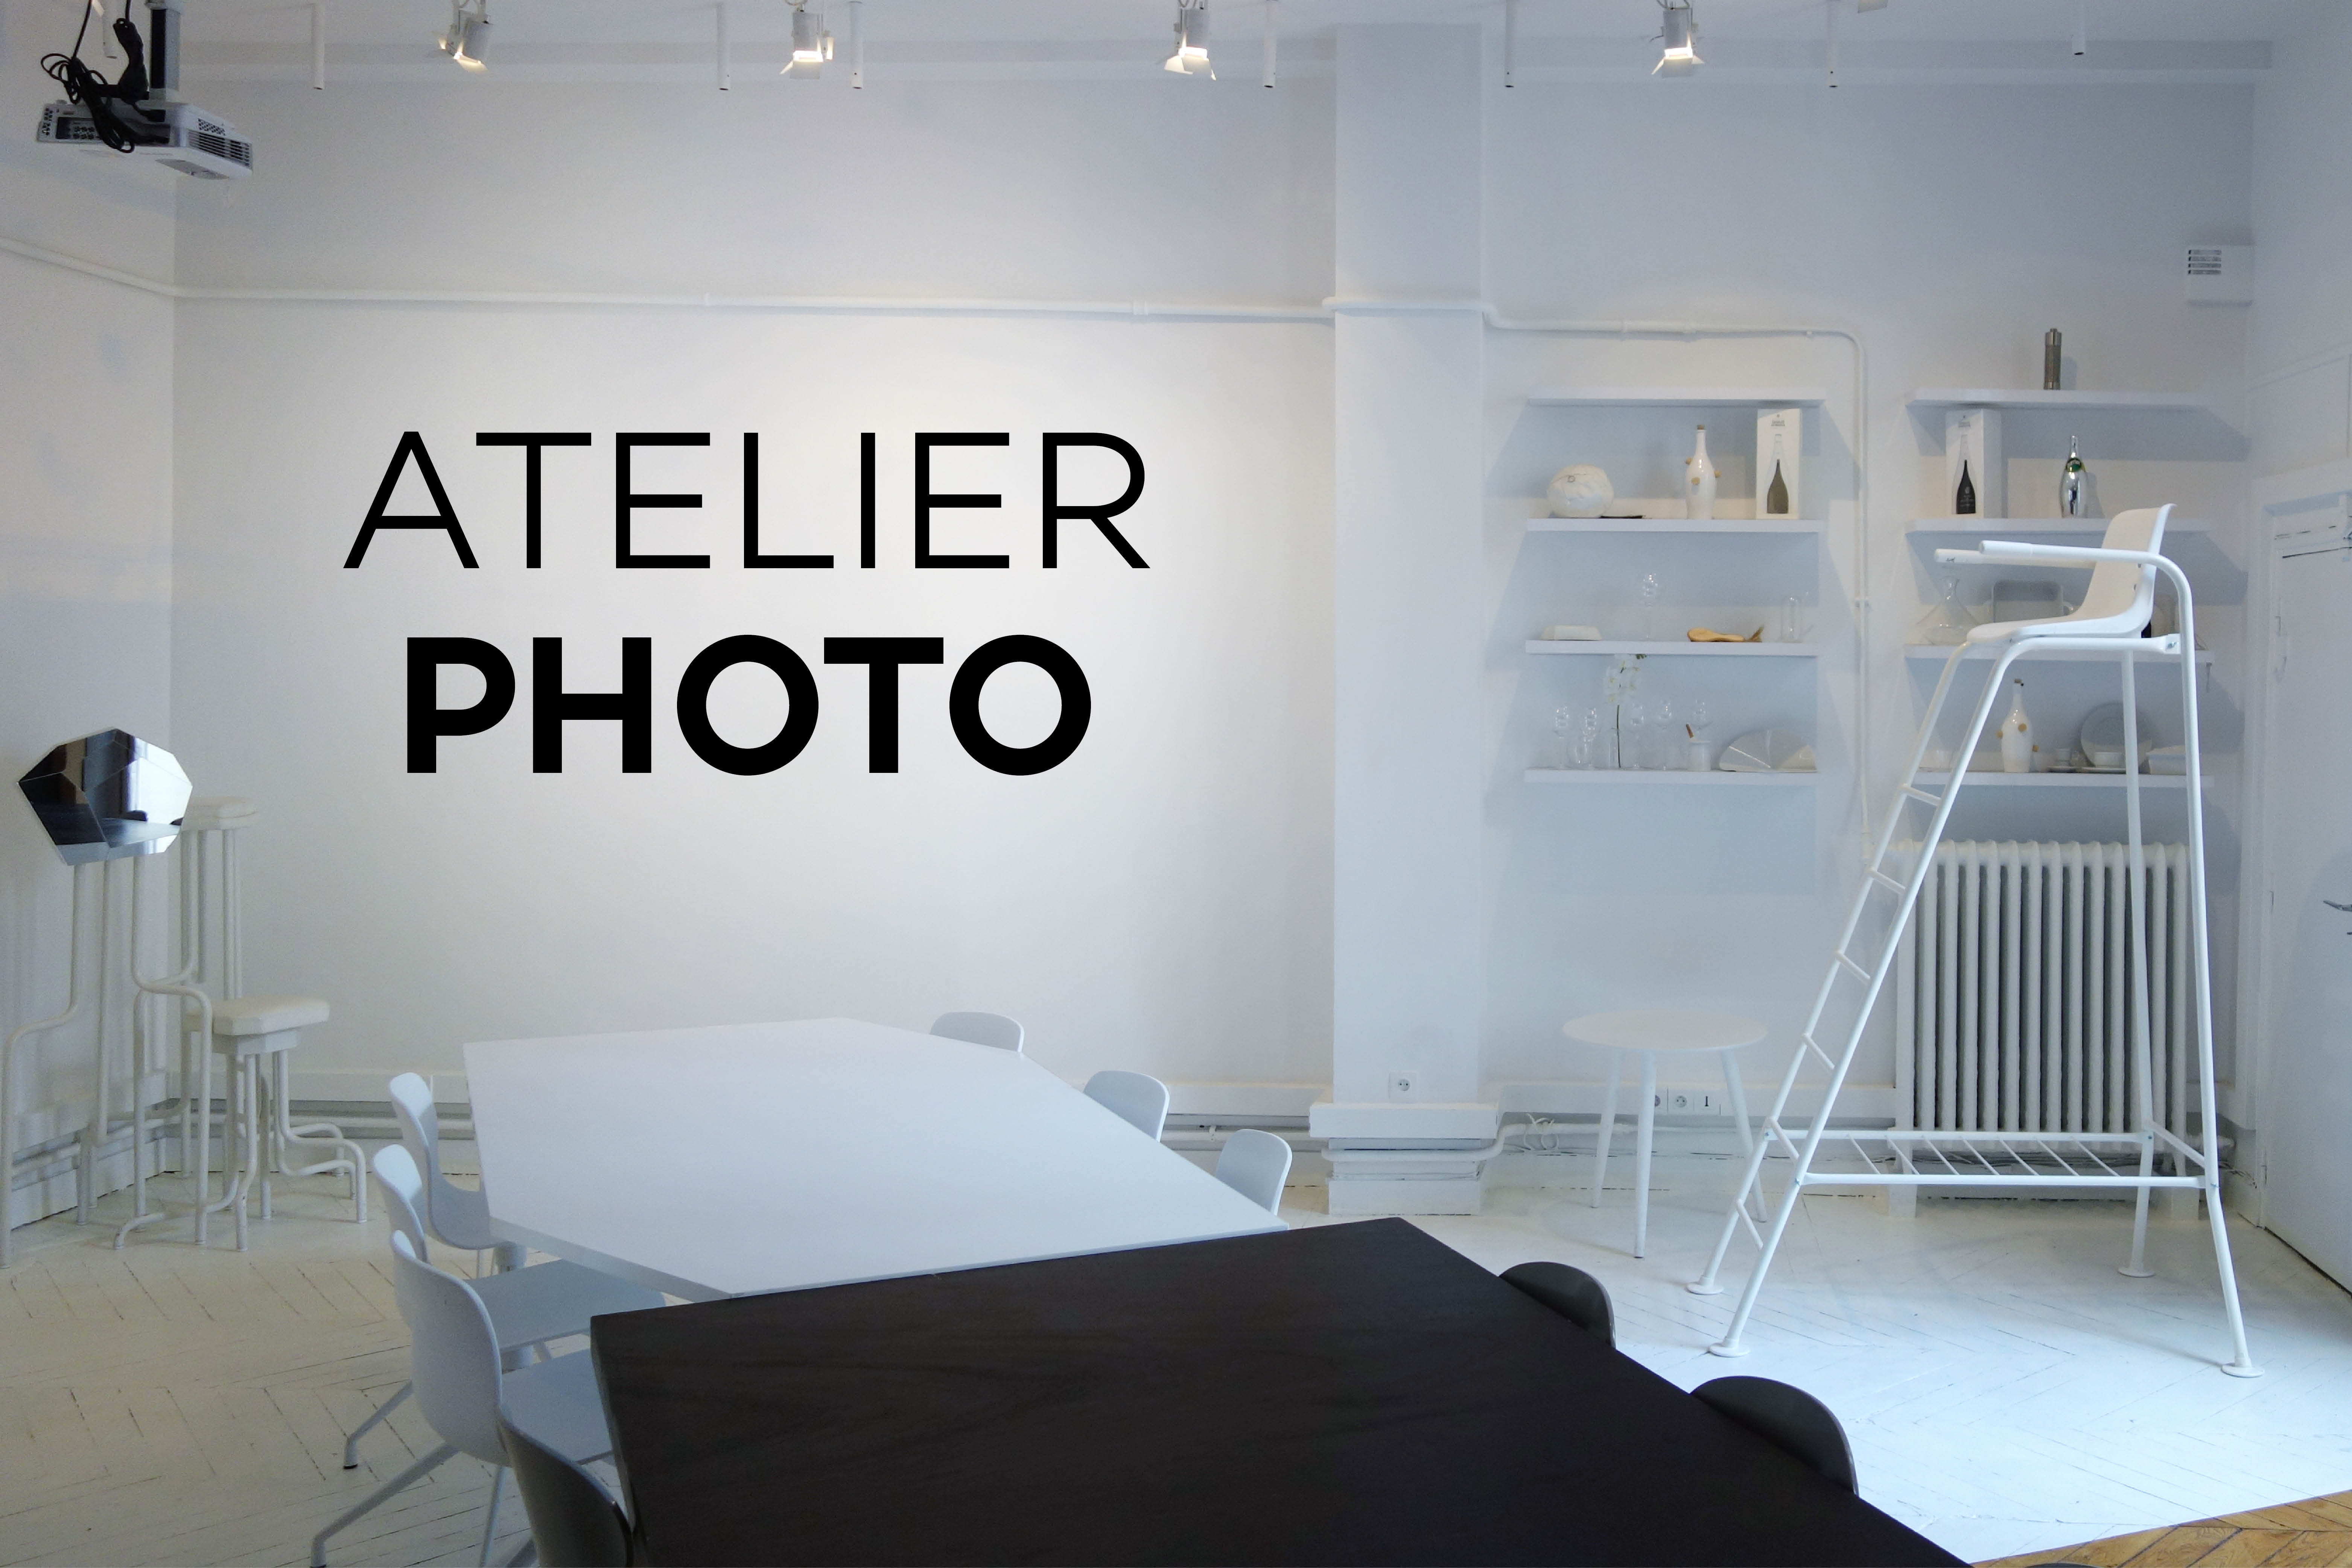 Atelier_photo_chezLesSismo (1)